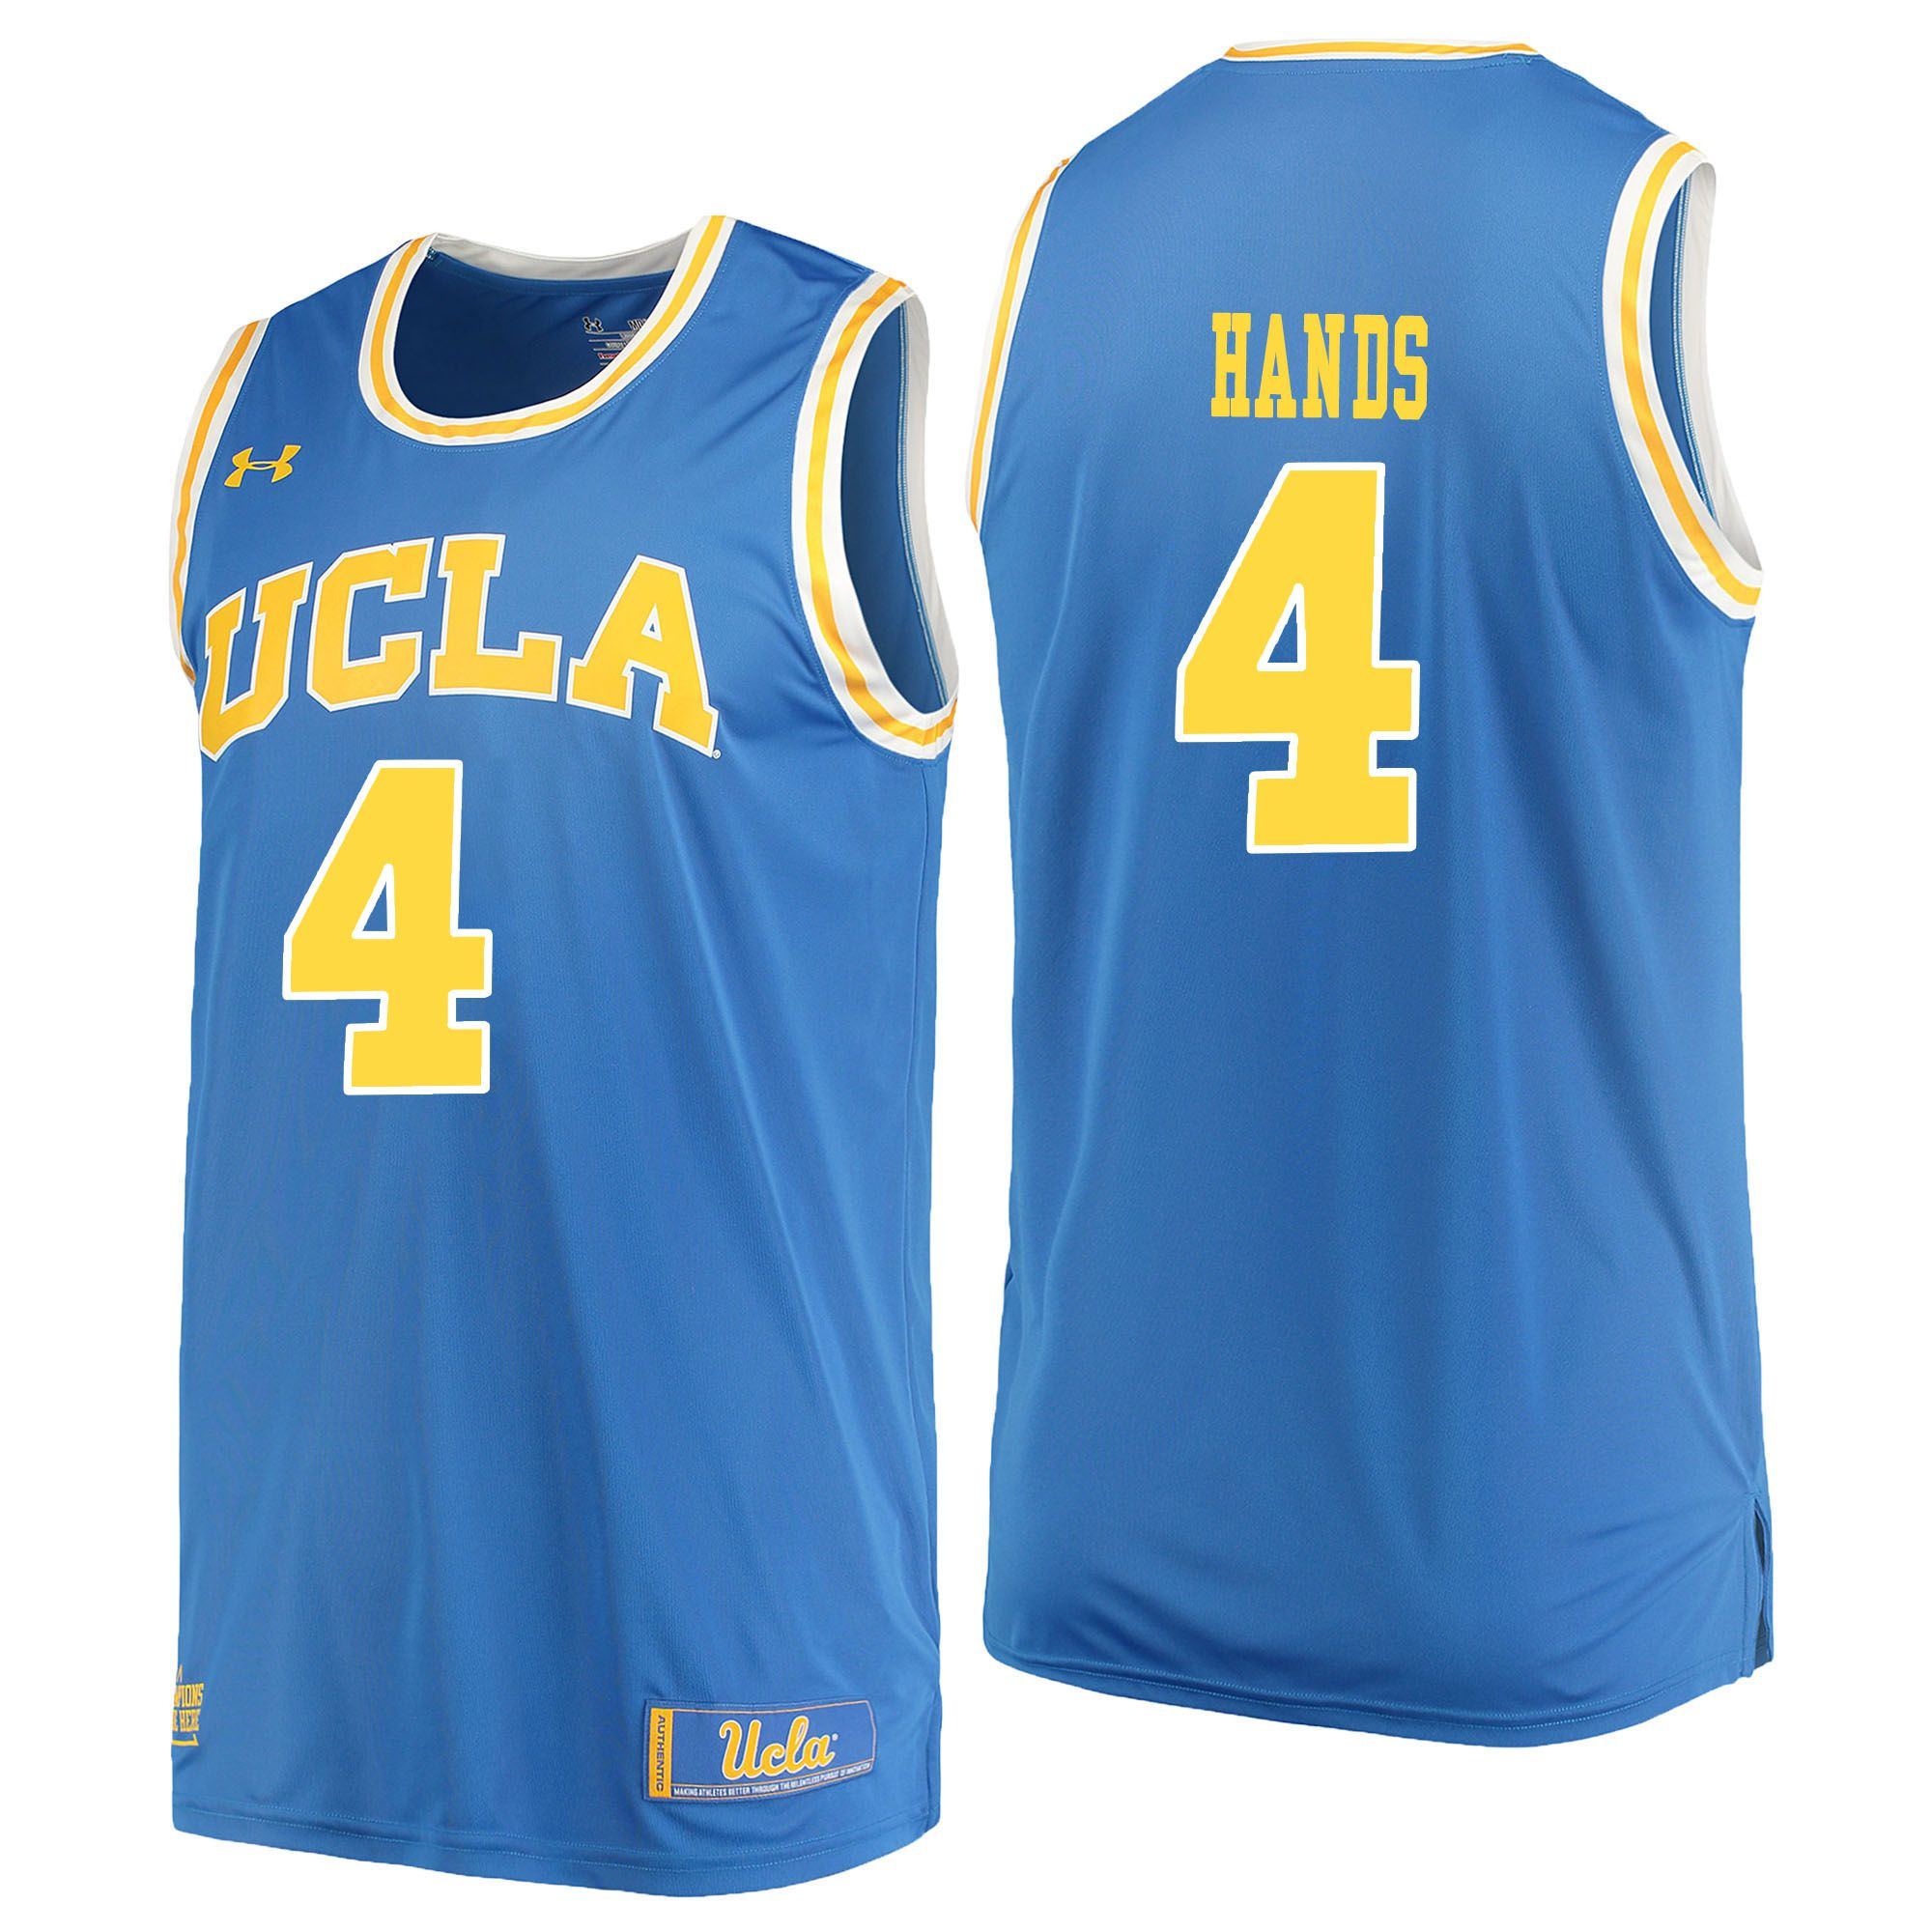 Men UCLA UA 4 Hands Light Blue Customized NCAA Jerseys